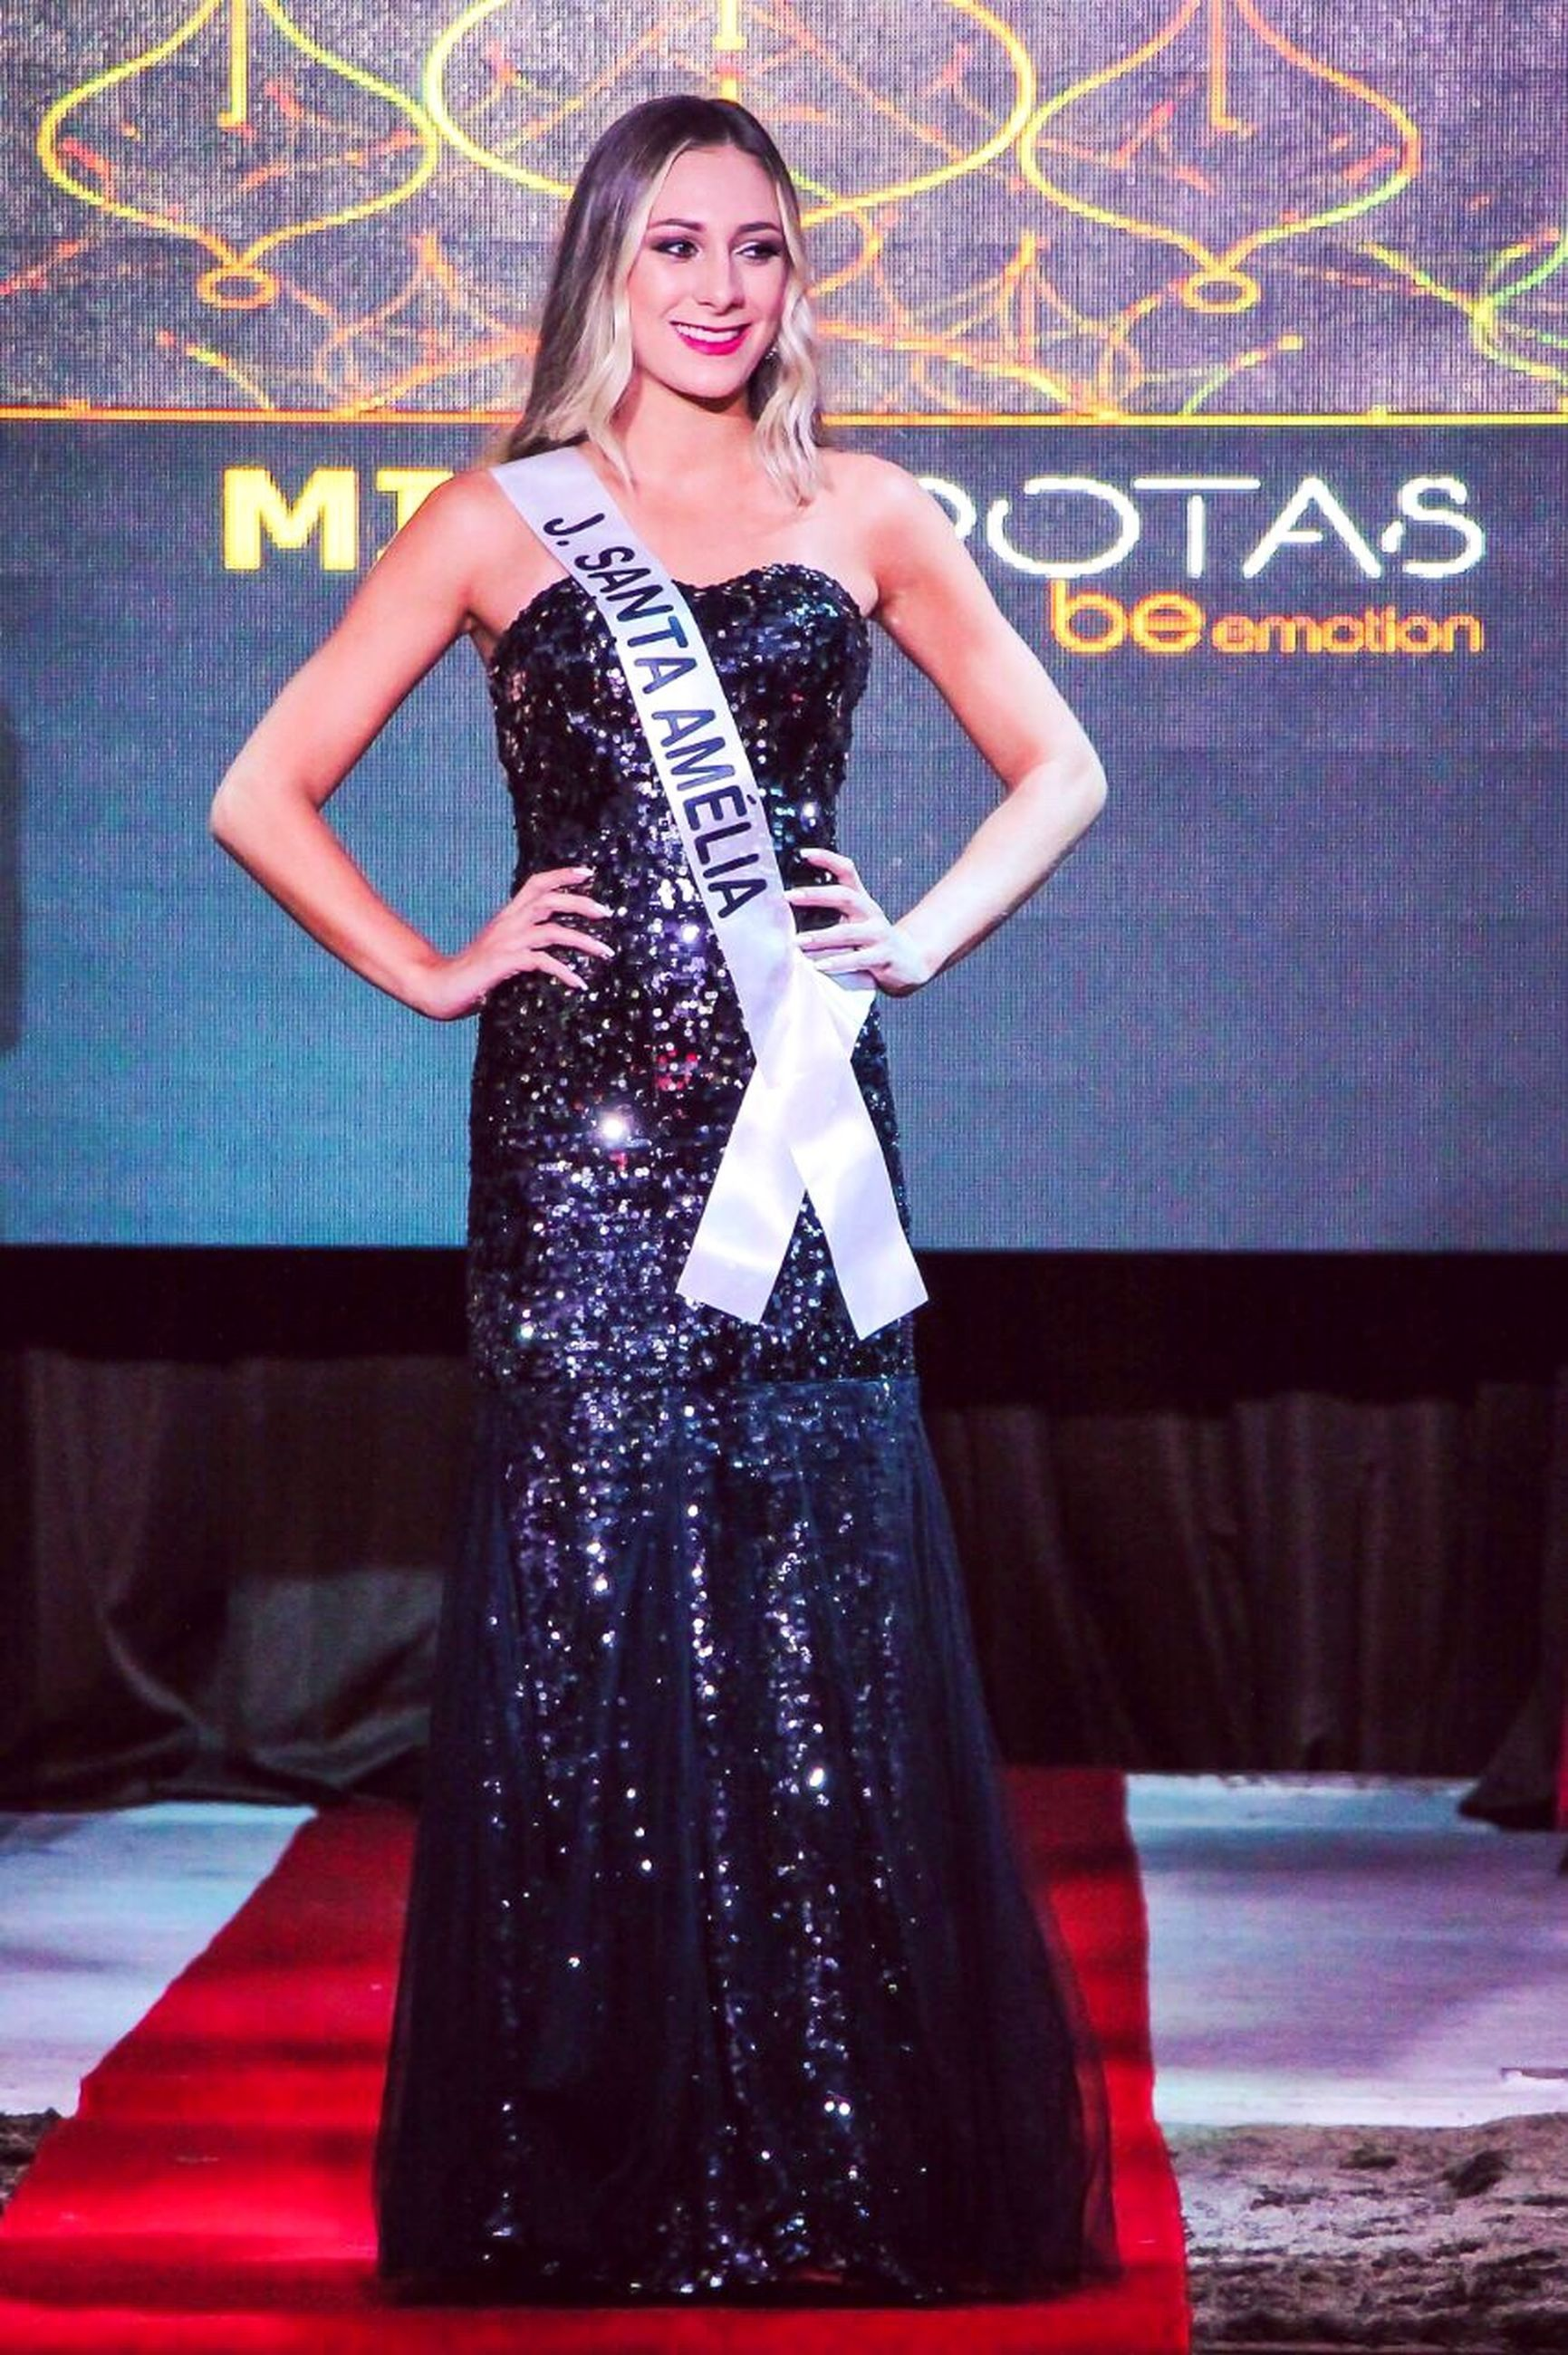 looking at camera, full length, portrait, one person, fashion, beautiful people, one woman only, beauty, confidence, young adult, people, indoors, adults only, glamour, luxury, beautiful woman, one young woman only, adult, only women, smiling, millionnaire, performing arts event, evening gown, day